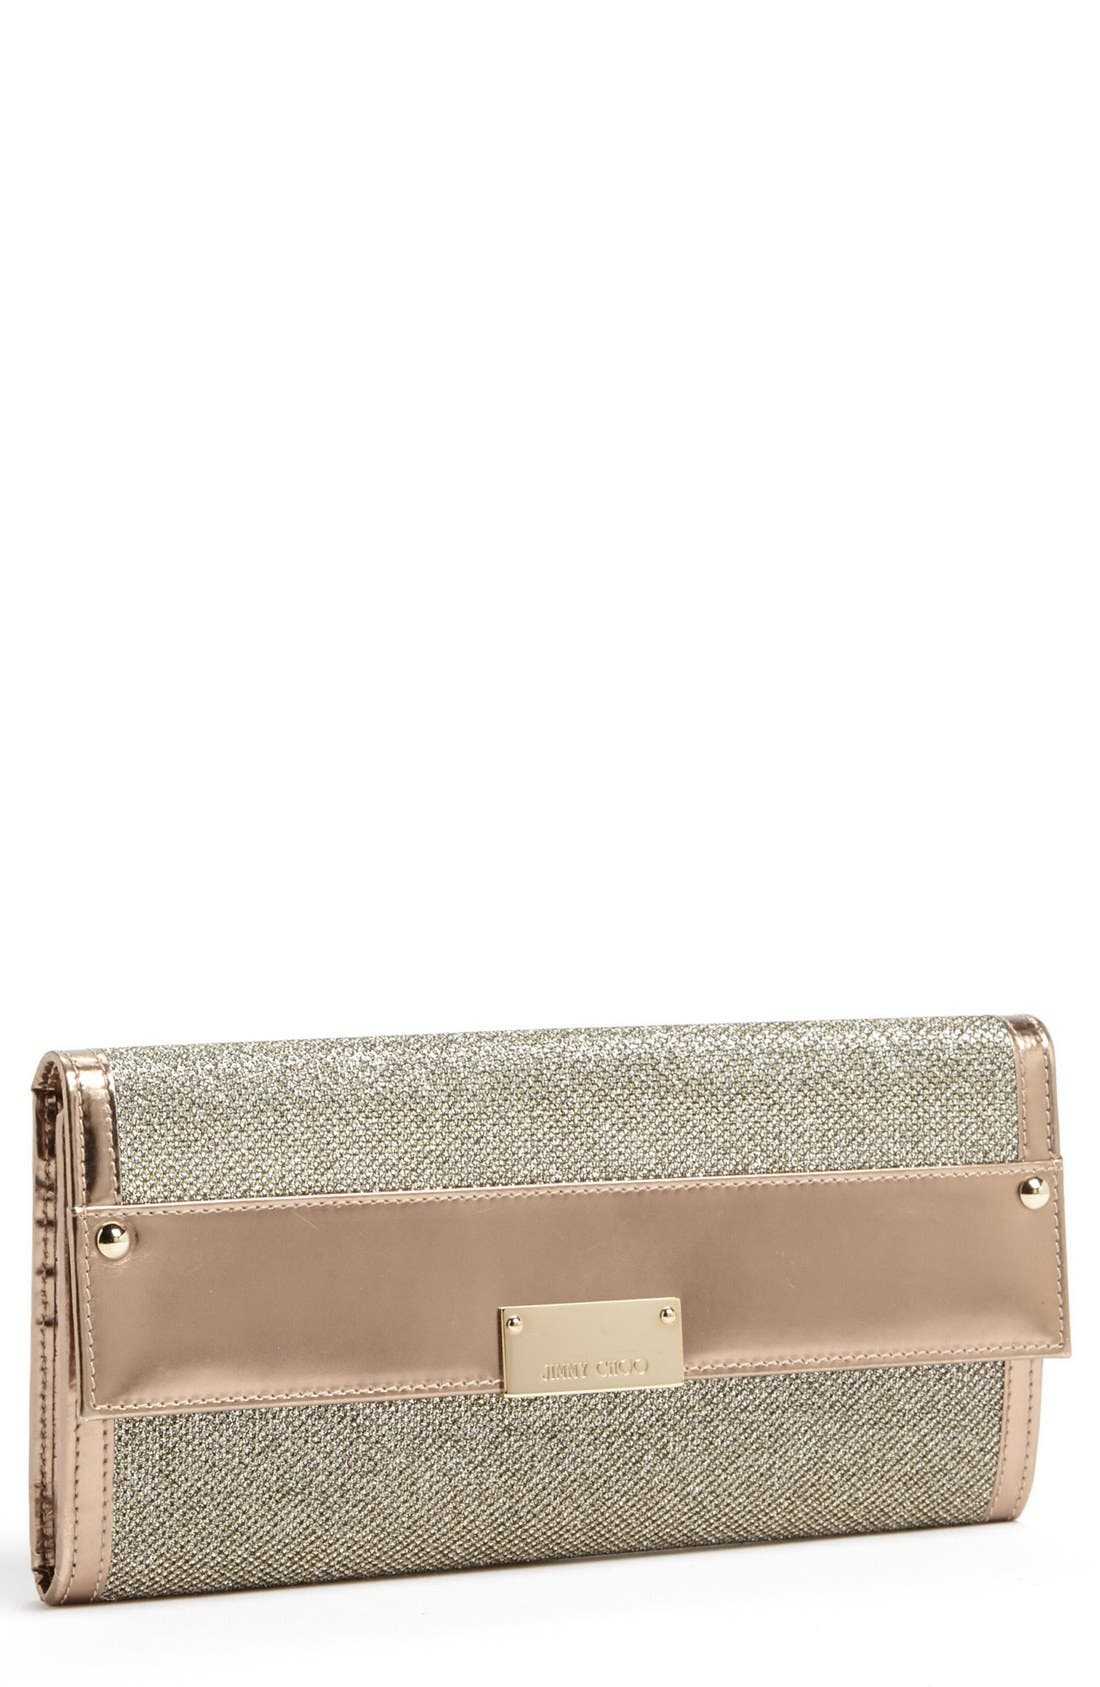 Main Image - Jimmy Choo 'Reese' Lamé Glitter Clutch